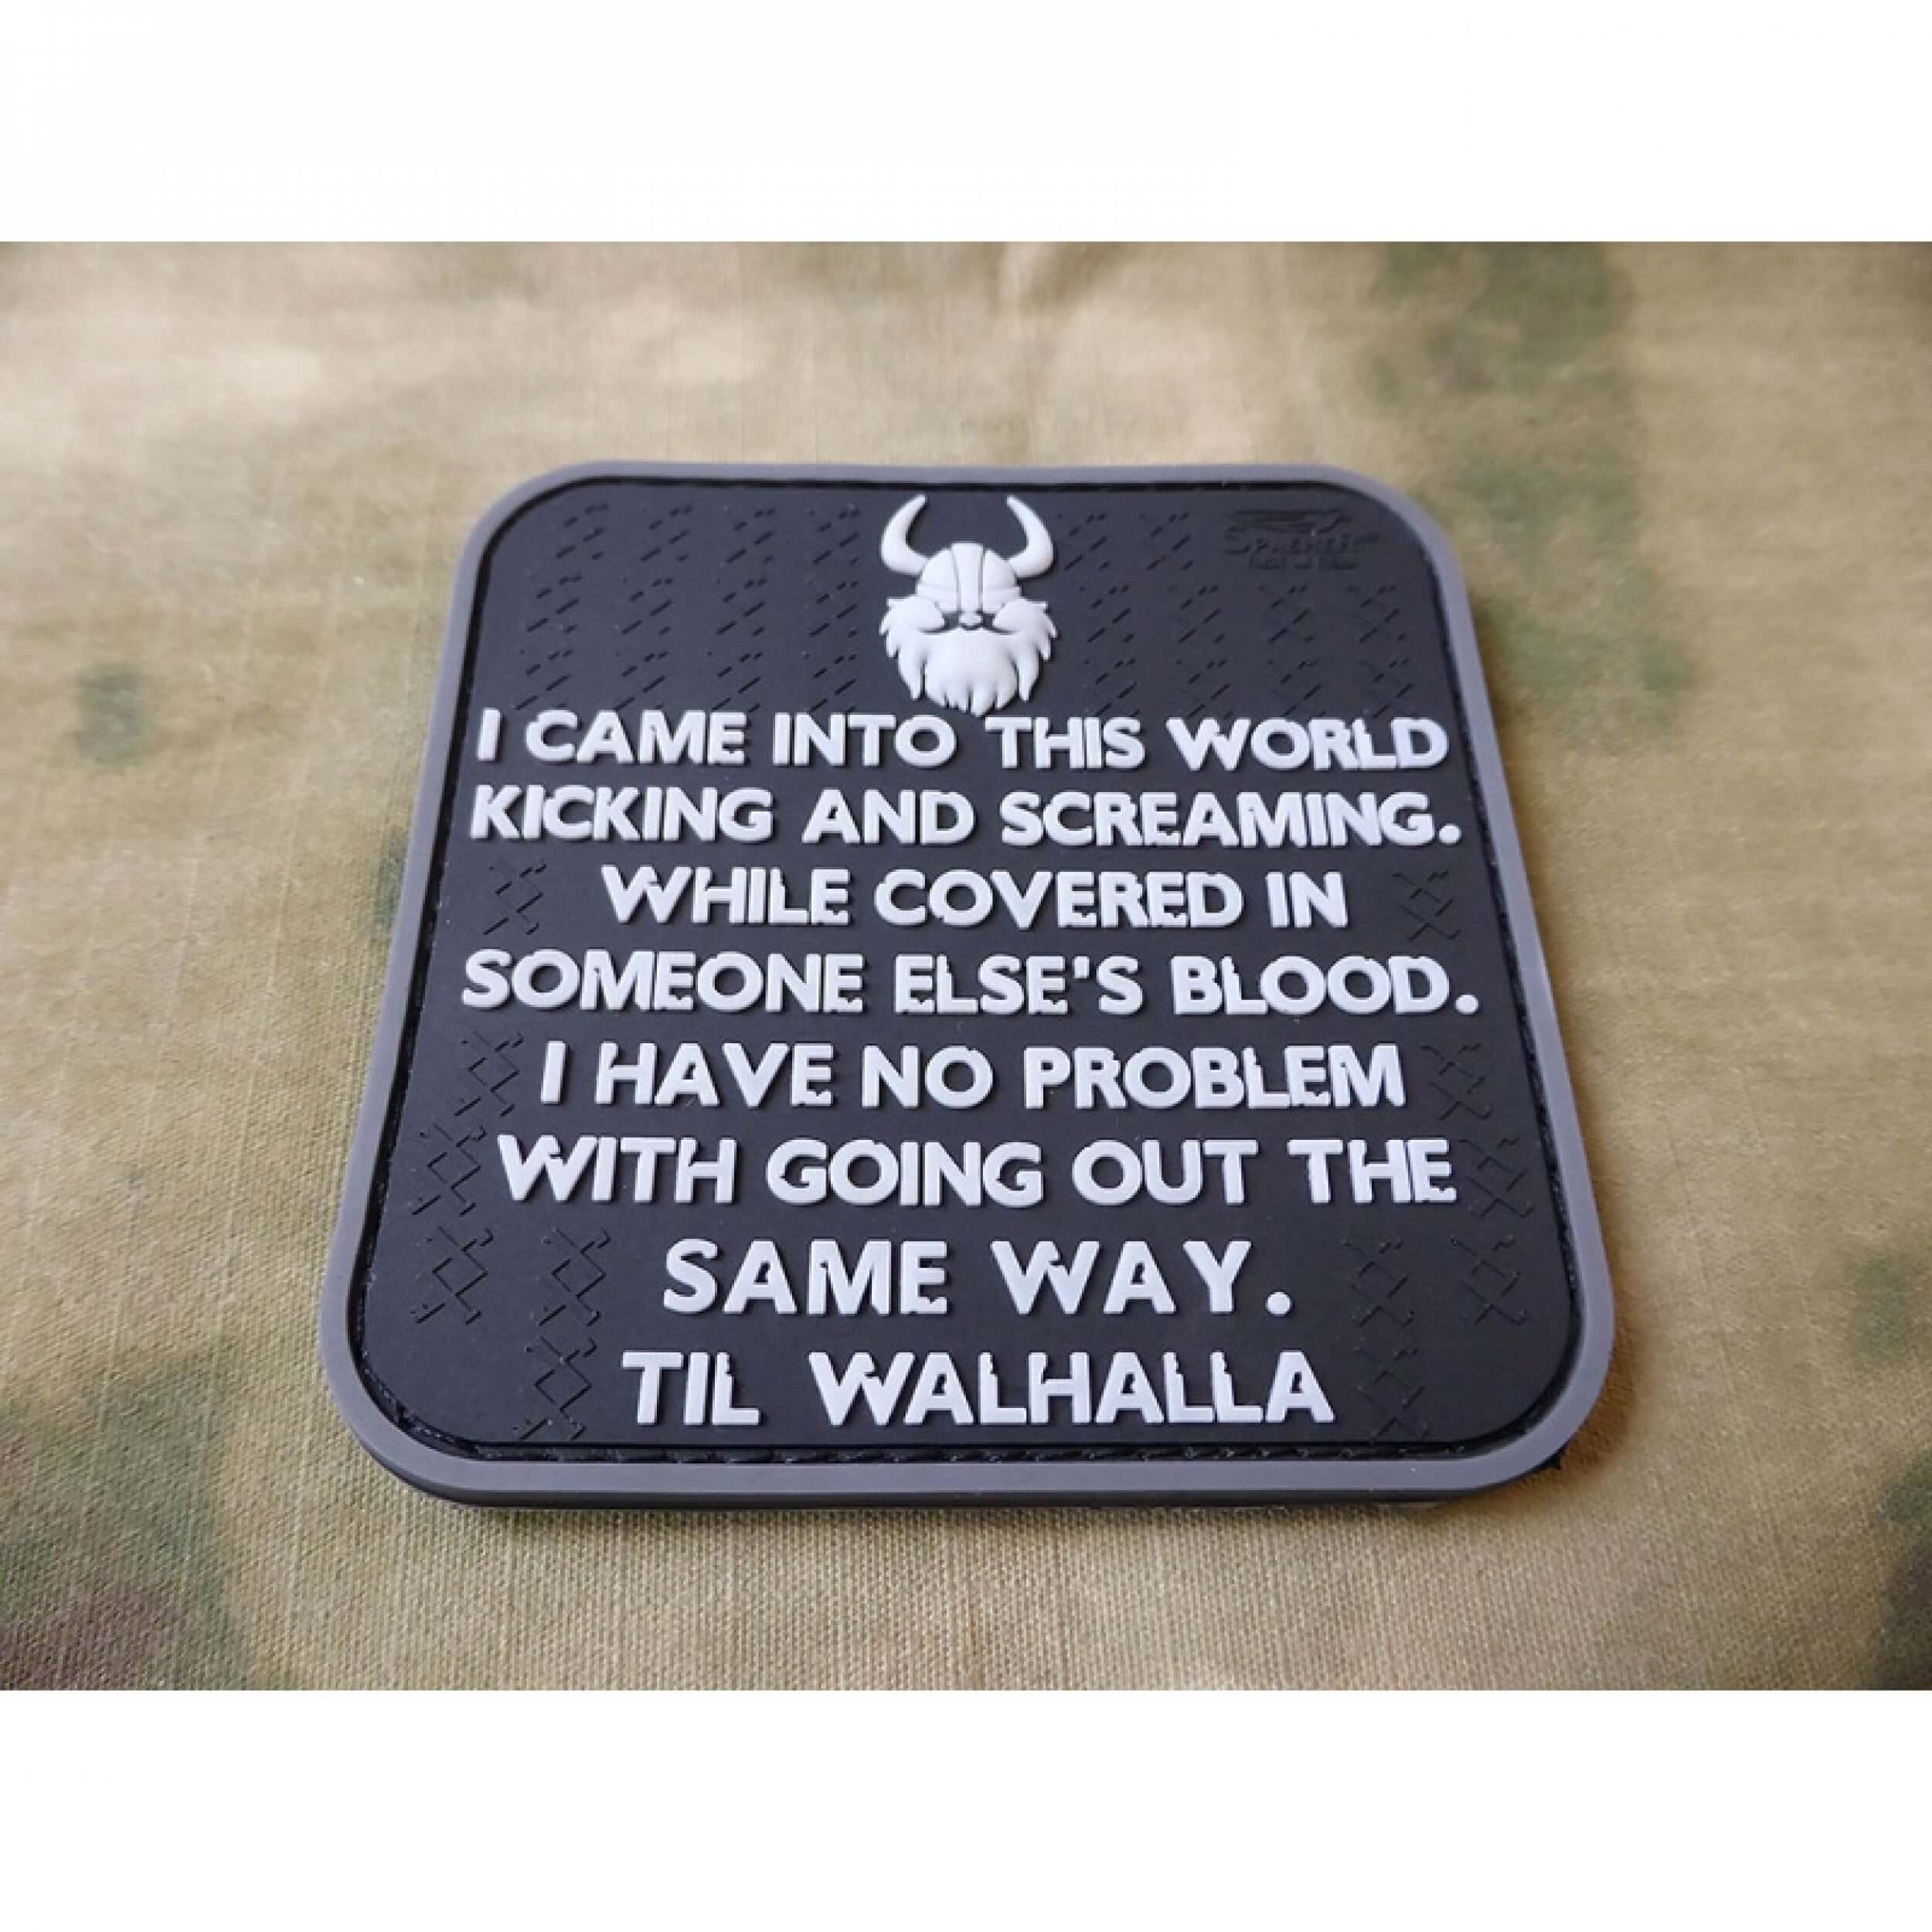 Vikings Way of Life Patch, swat / JTG 3D Rubber Patch